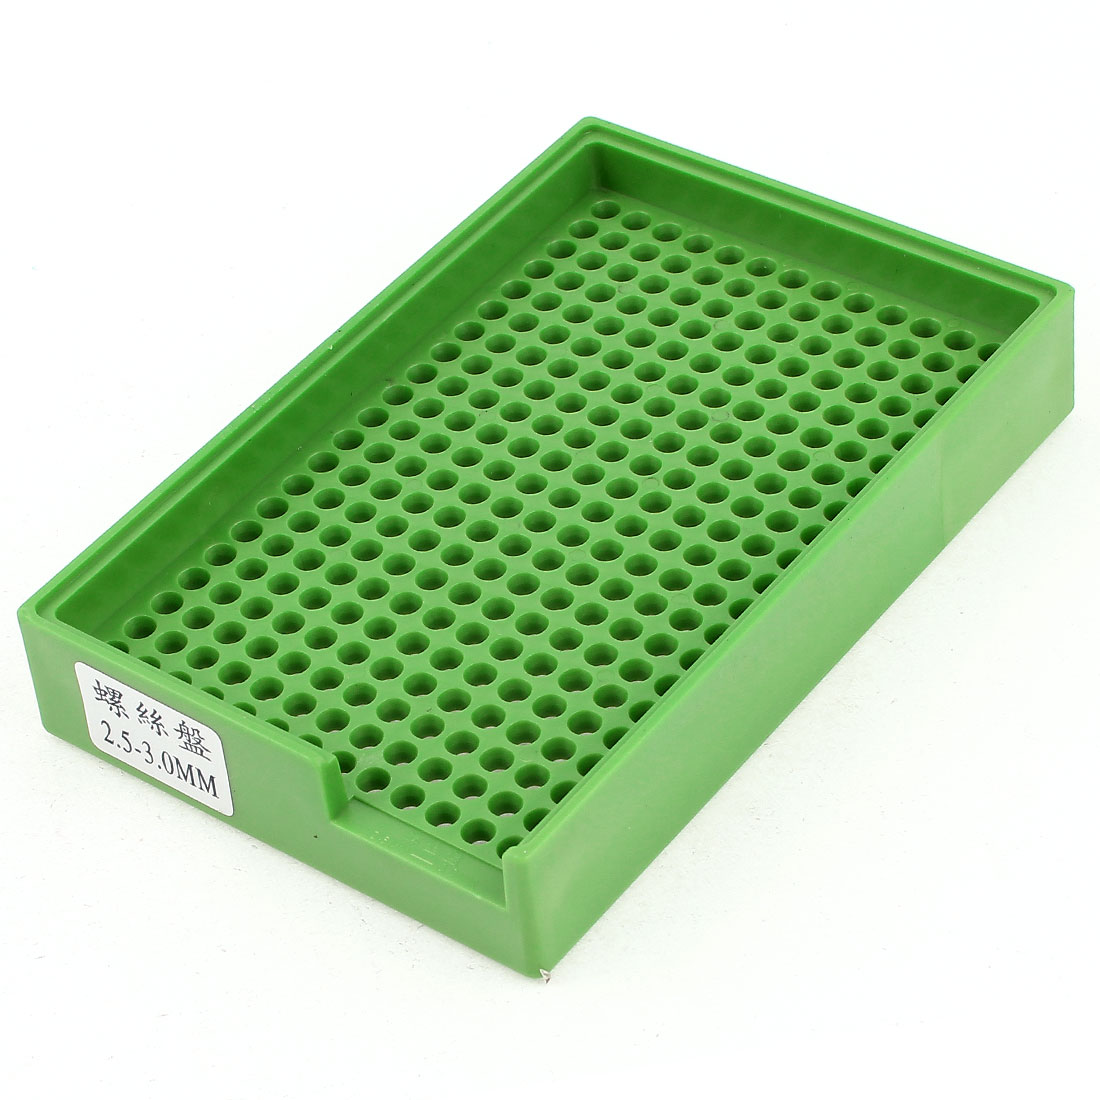 Anti-static Plastic Tray Holder Green 273 Holes for 2.5mm-3.0mm Screws